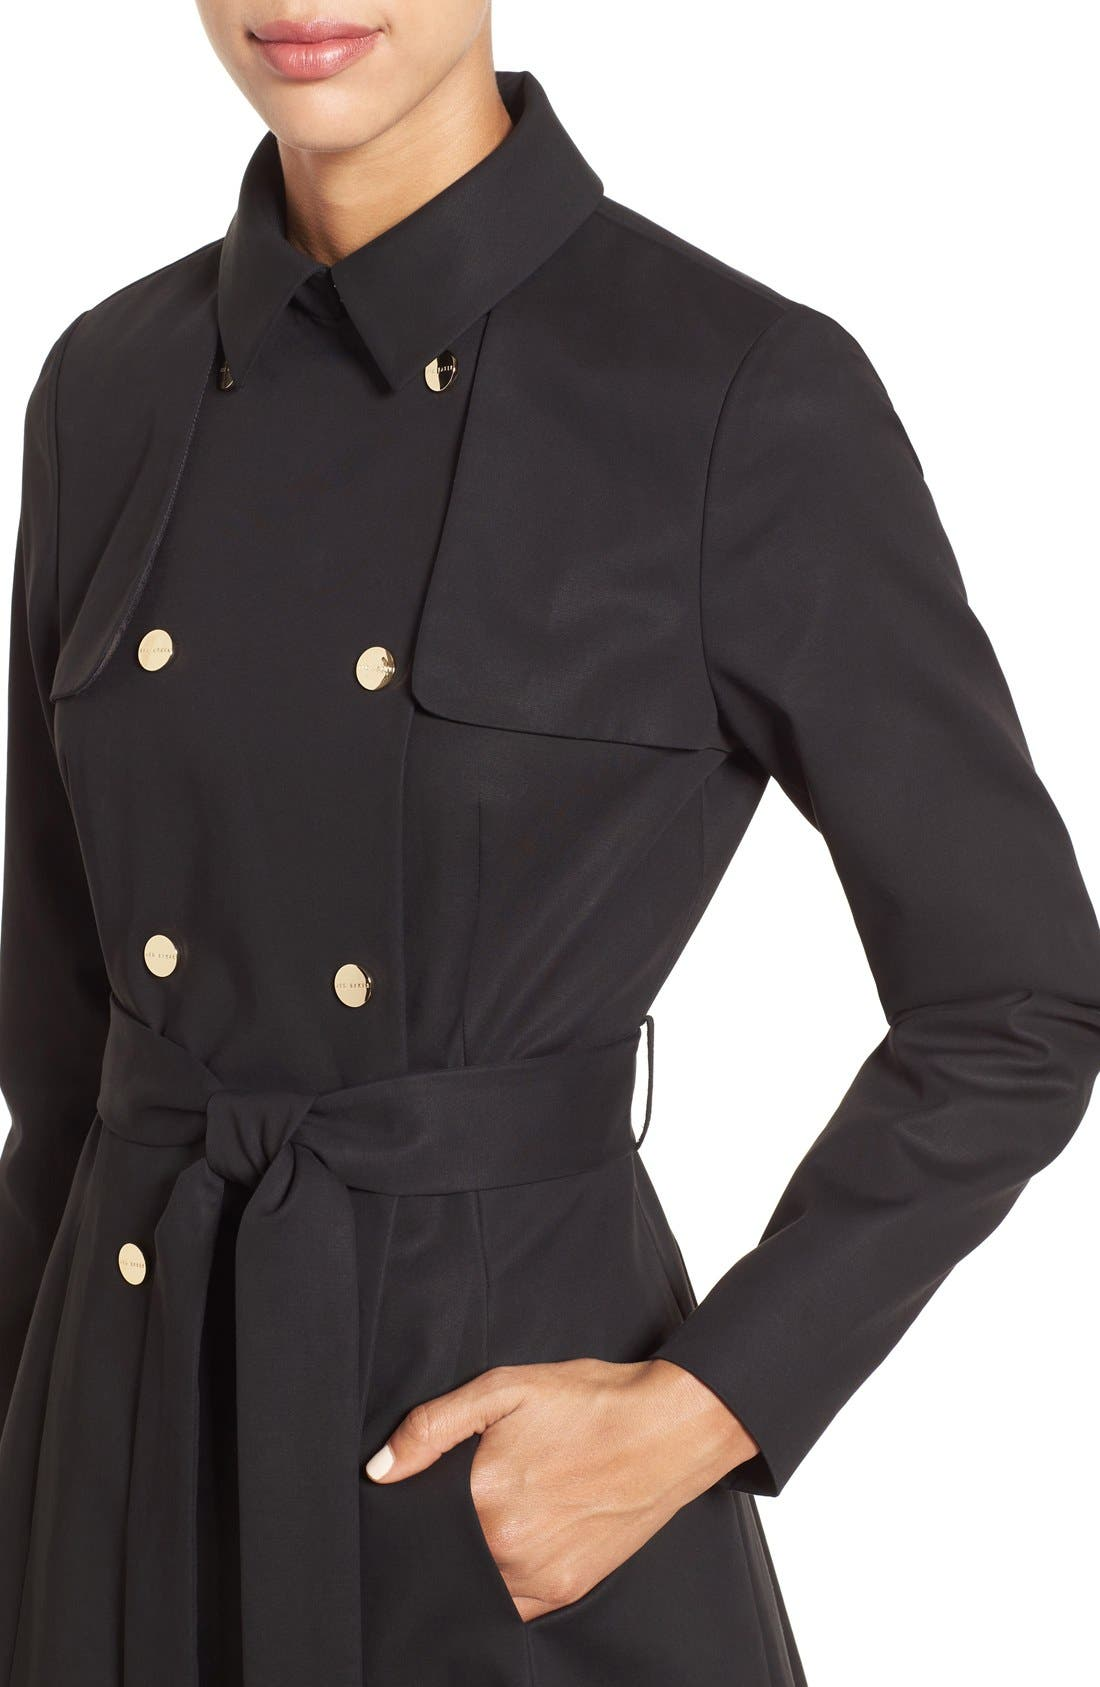 Double Breasted Trench Coat,                             Alternate thumbnail 4, color,                             001